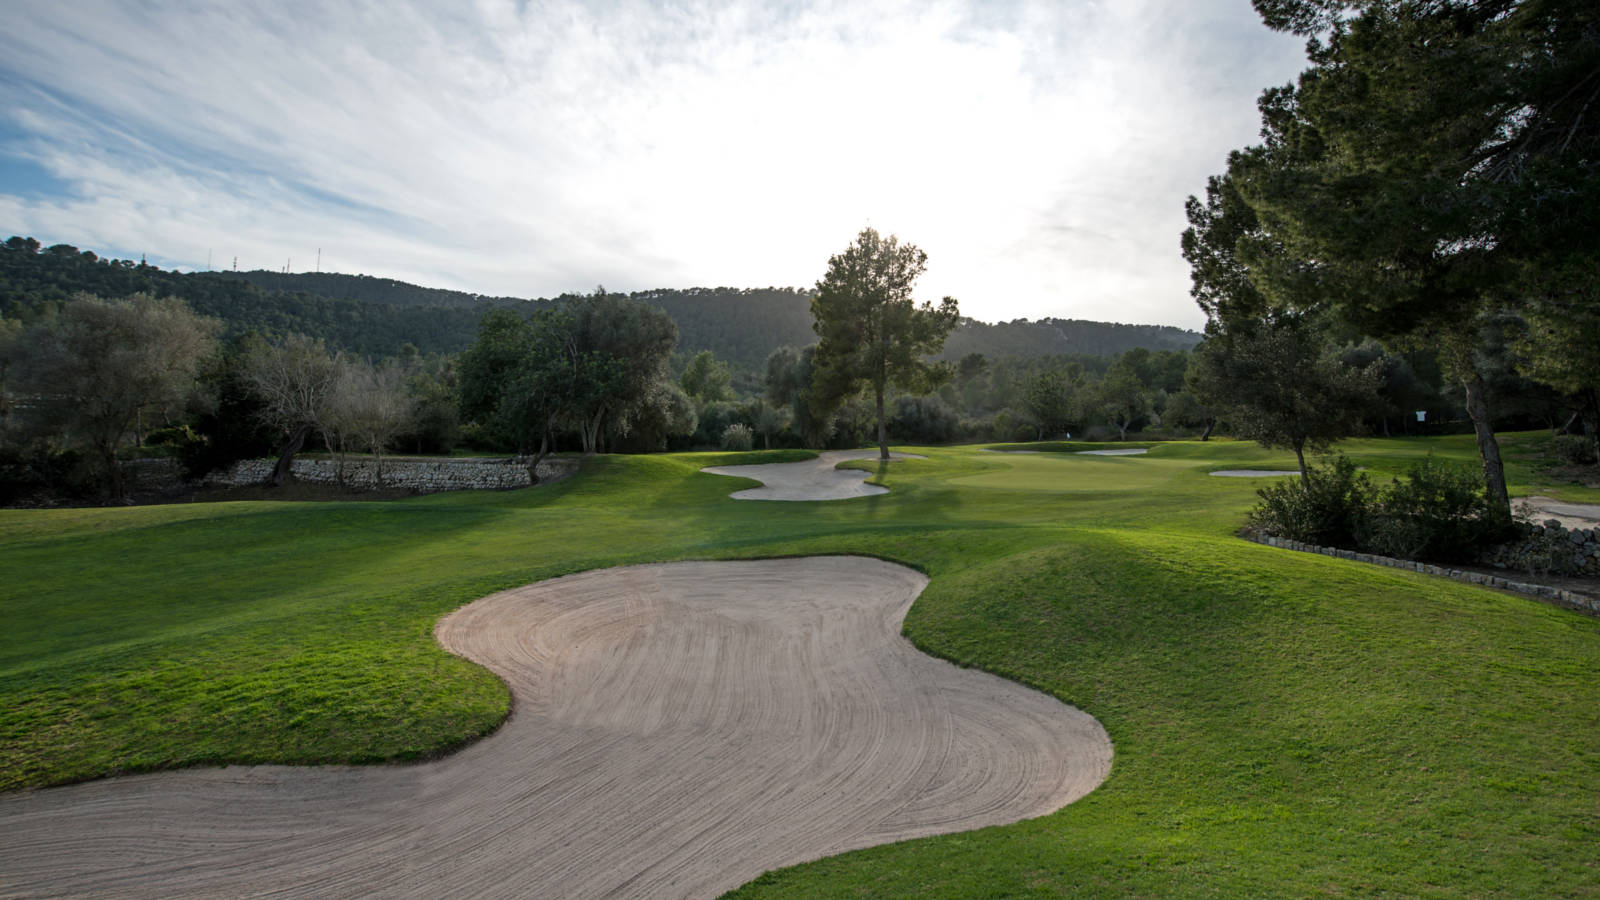 Son Muntaner golf course at Arabella Golf